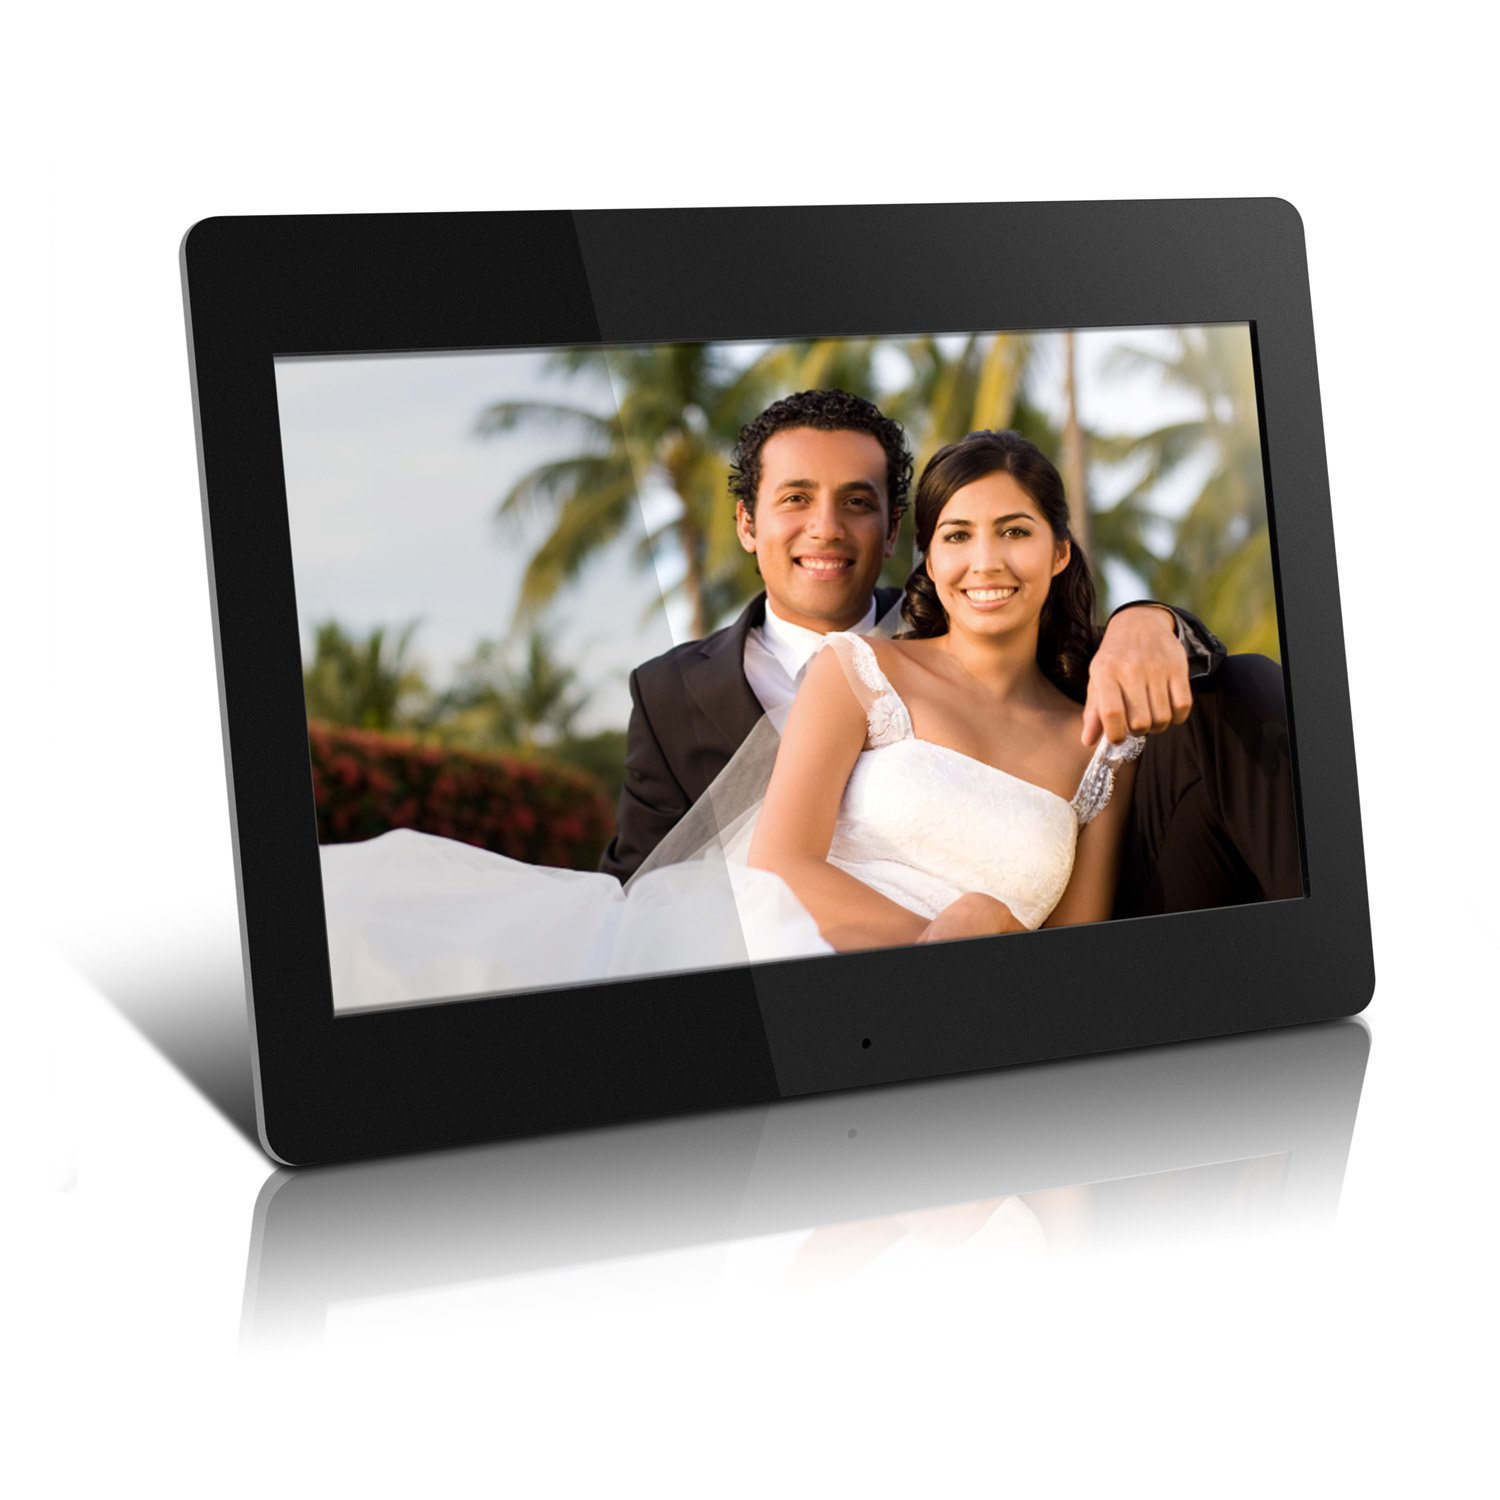 High Resolution 14 inch Digital Photo Frame w/512MB Built-in Memory and Remote (1366 x 768) ADMPF114F